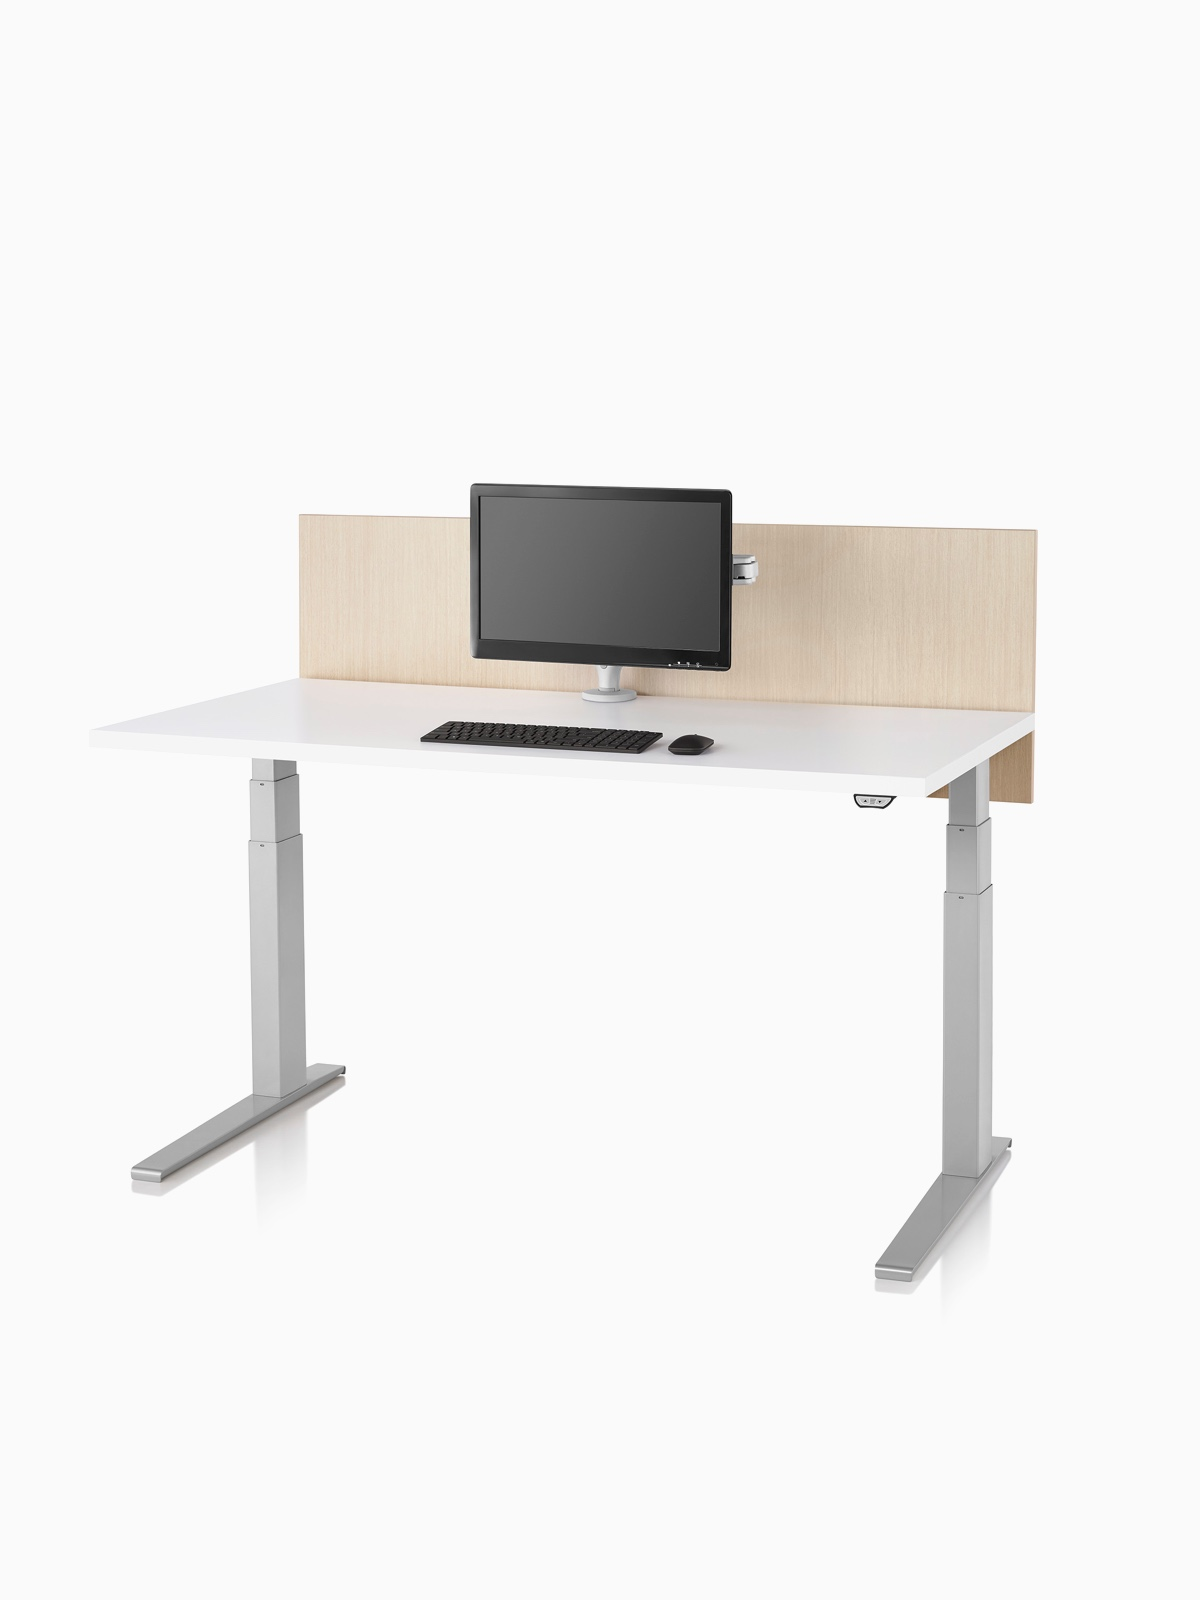 A tan laminate privacy screen installed on a Motia Sit-to-Stand Table that has a white top and silver legs.